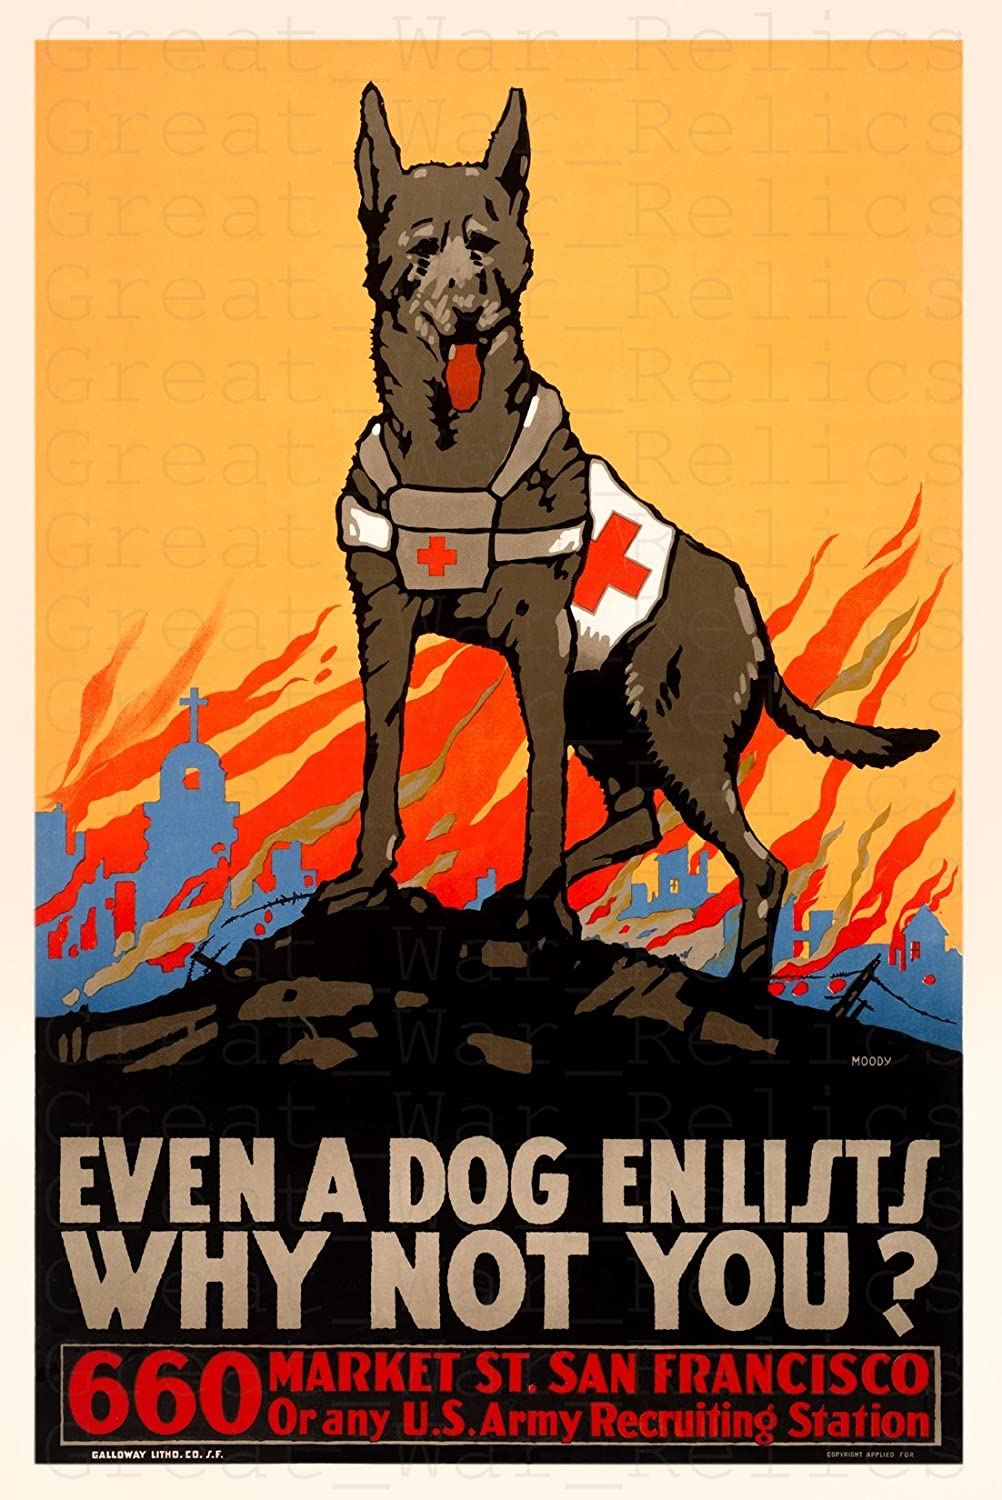 "WW1 American Propaganda Poster, Size 11.7x16.5 inches - ""EVEN A DOG ENLISTS WHY NOT YOU?""- Vintage San Francisco Art Prints Reproduction - WWI Vintage San Francisco California Recruiting Recruitment"